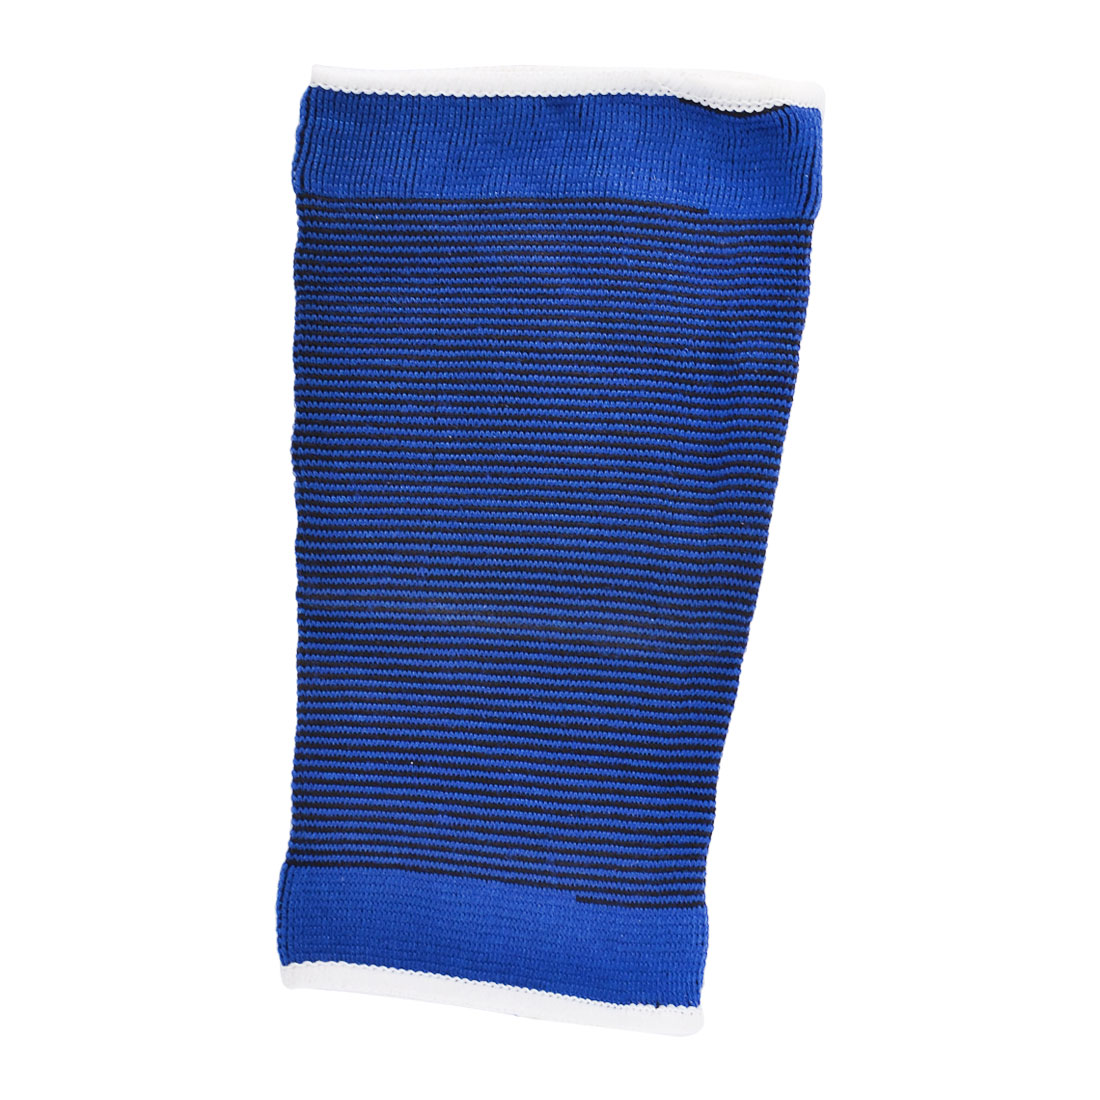 Men Elastic Fabric Athletic Sports Wrestling Knee Support Protector Blue